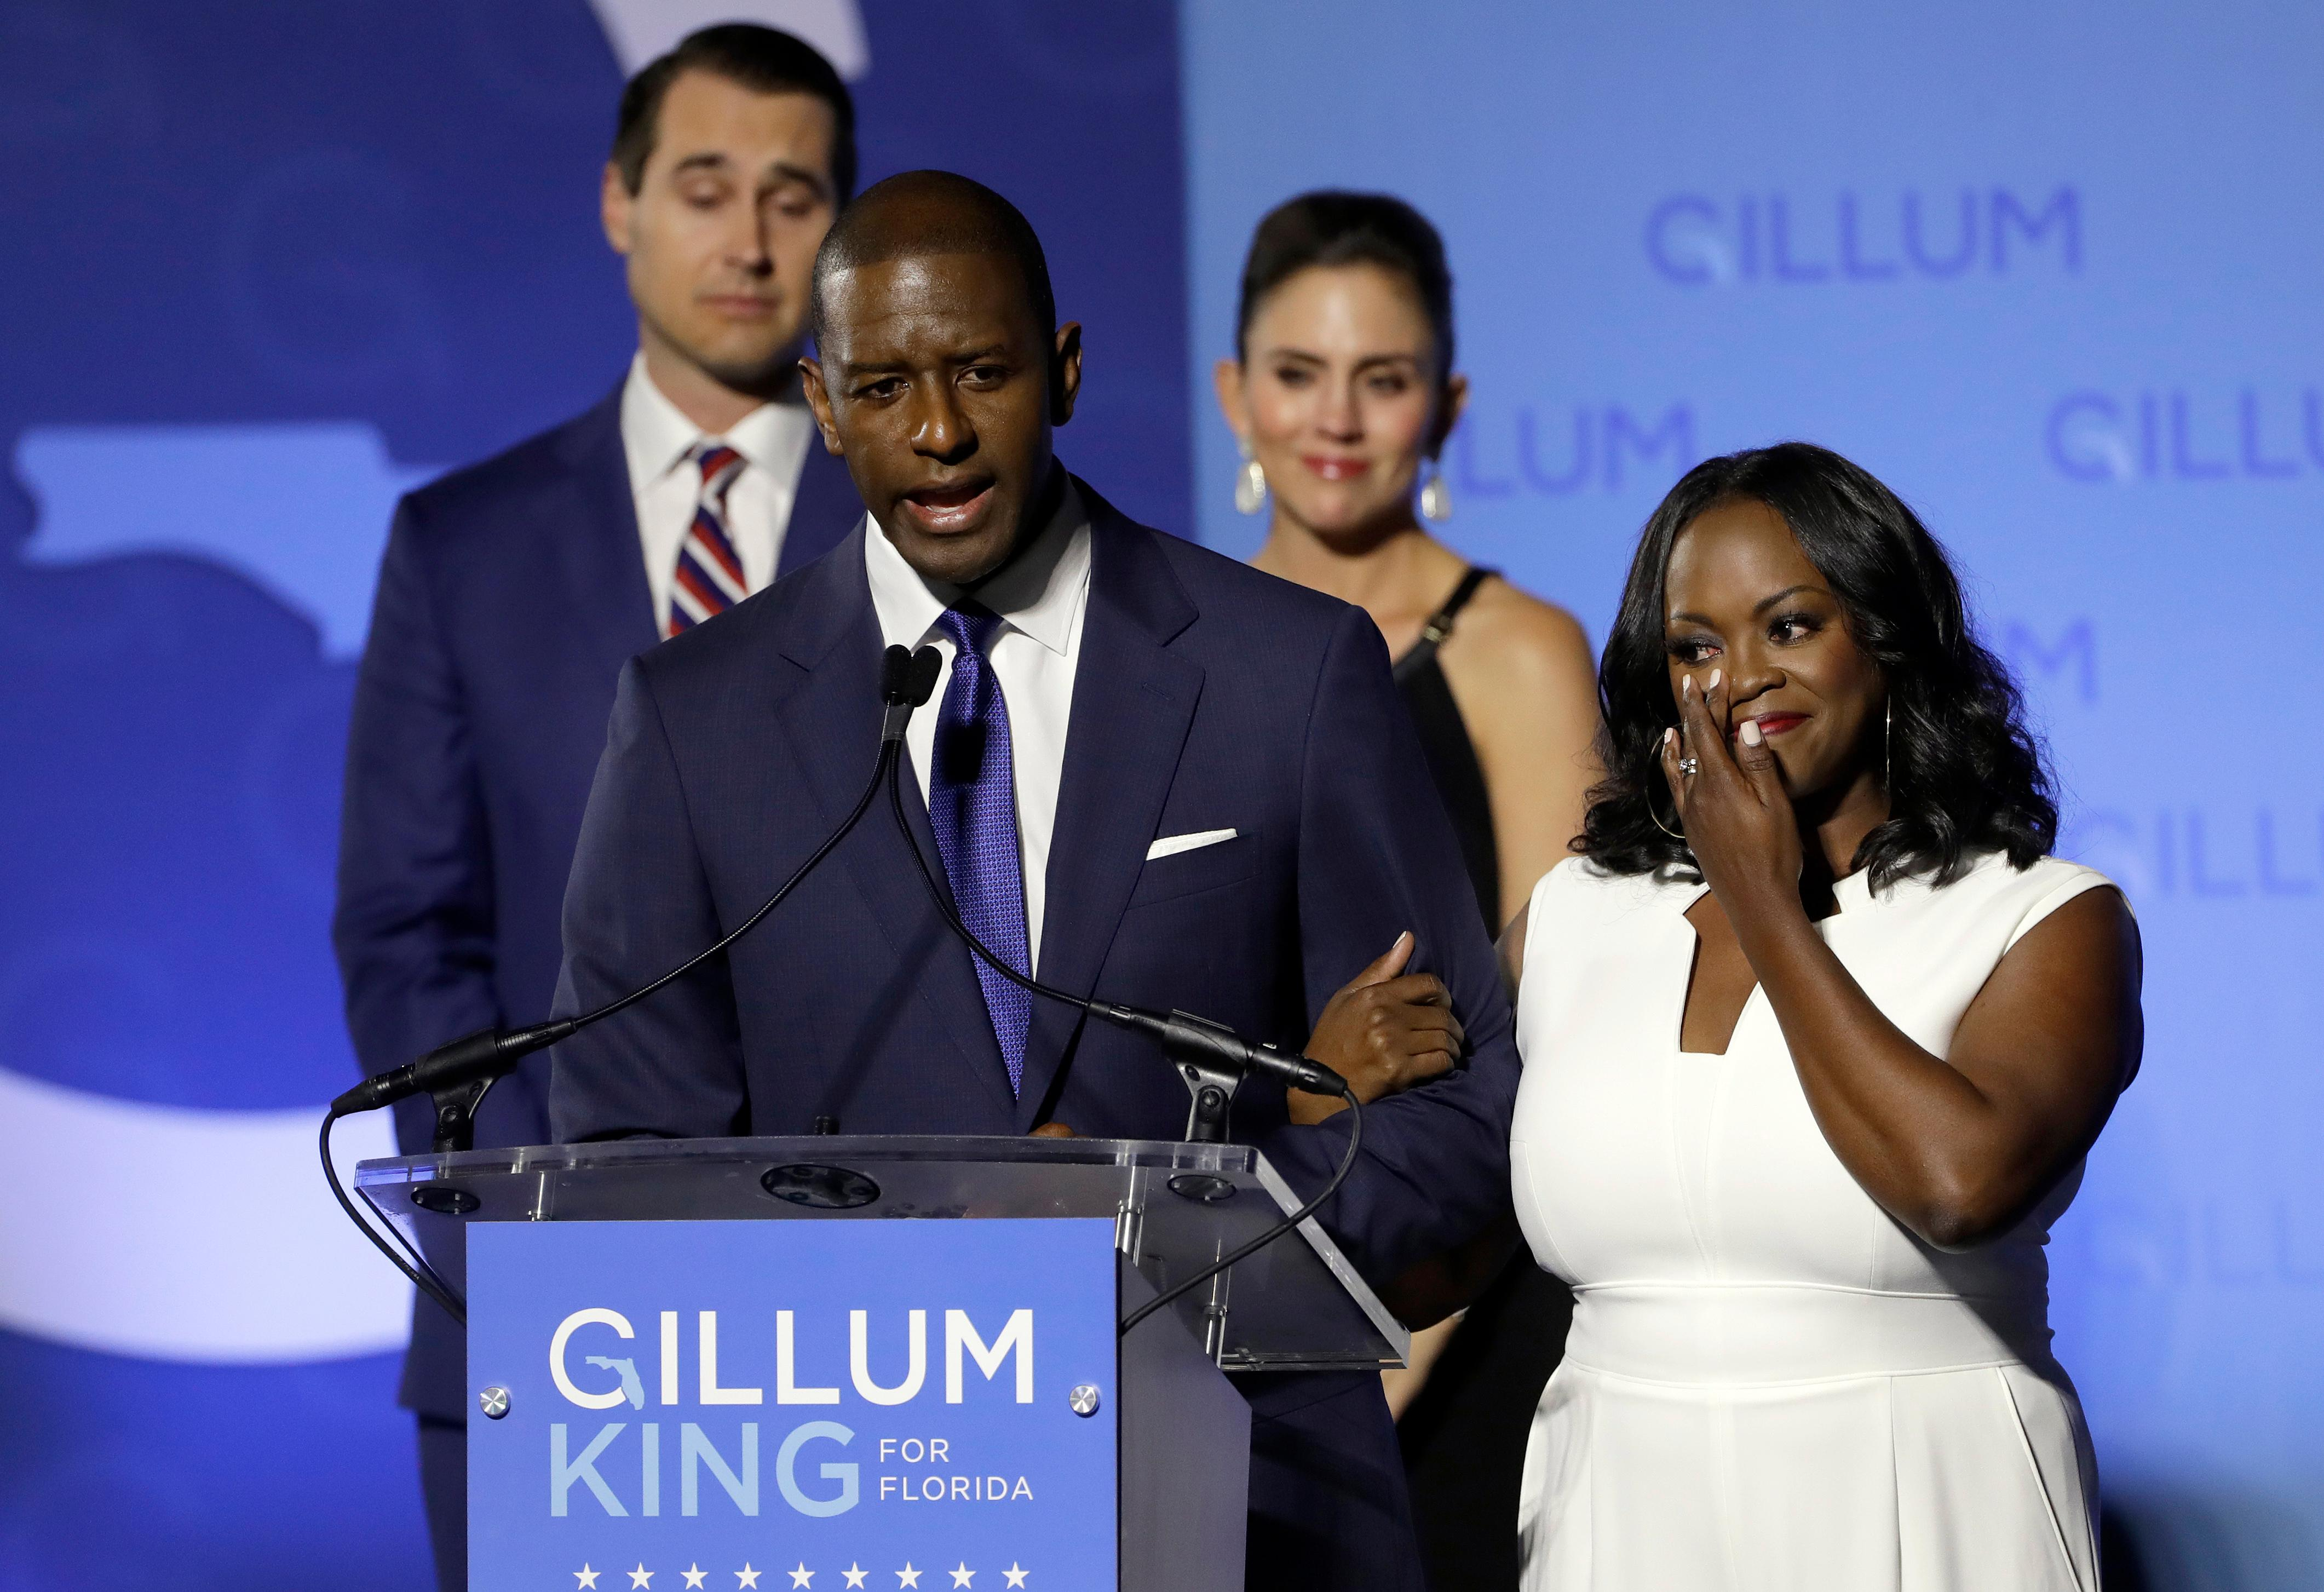 Florida Democratic gubernatorial candidate Andrew Gillum gives his concession speech as he is joined on stage by his wife R. Jai Gillum, right, and running mate Chris King and his wife Kristen. (AP Photo/Chris O'Meara)